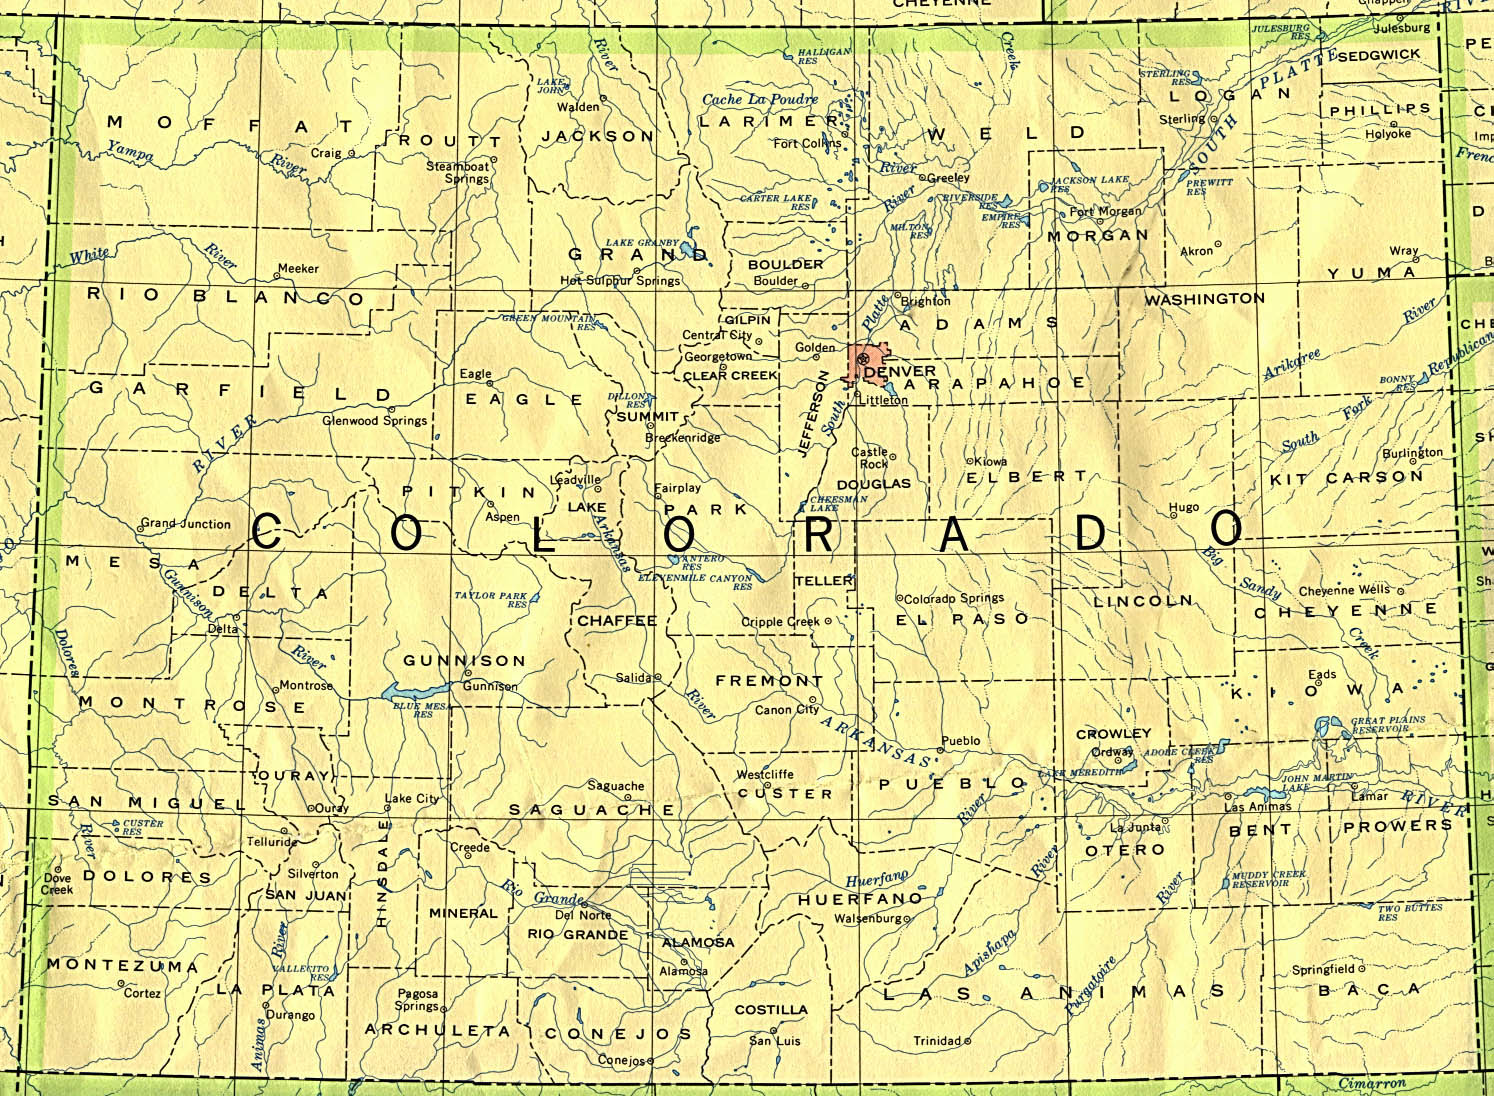 colorado maps - perry-casta u00f1eda map collection